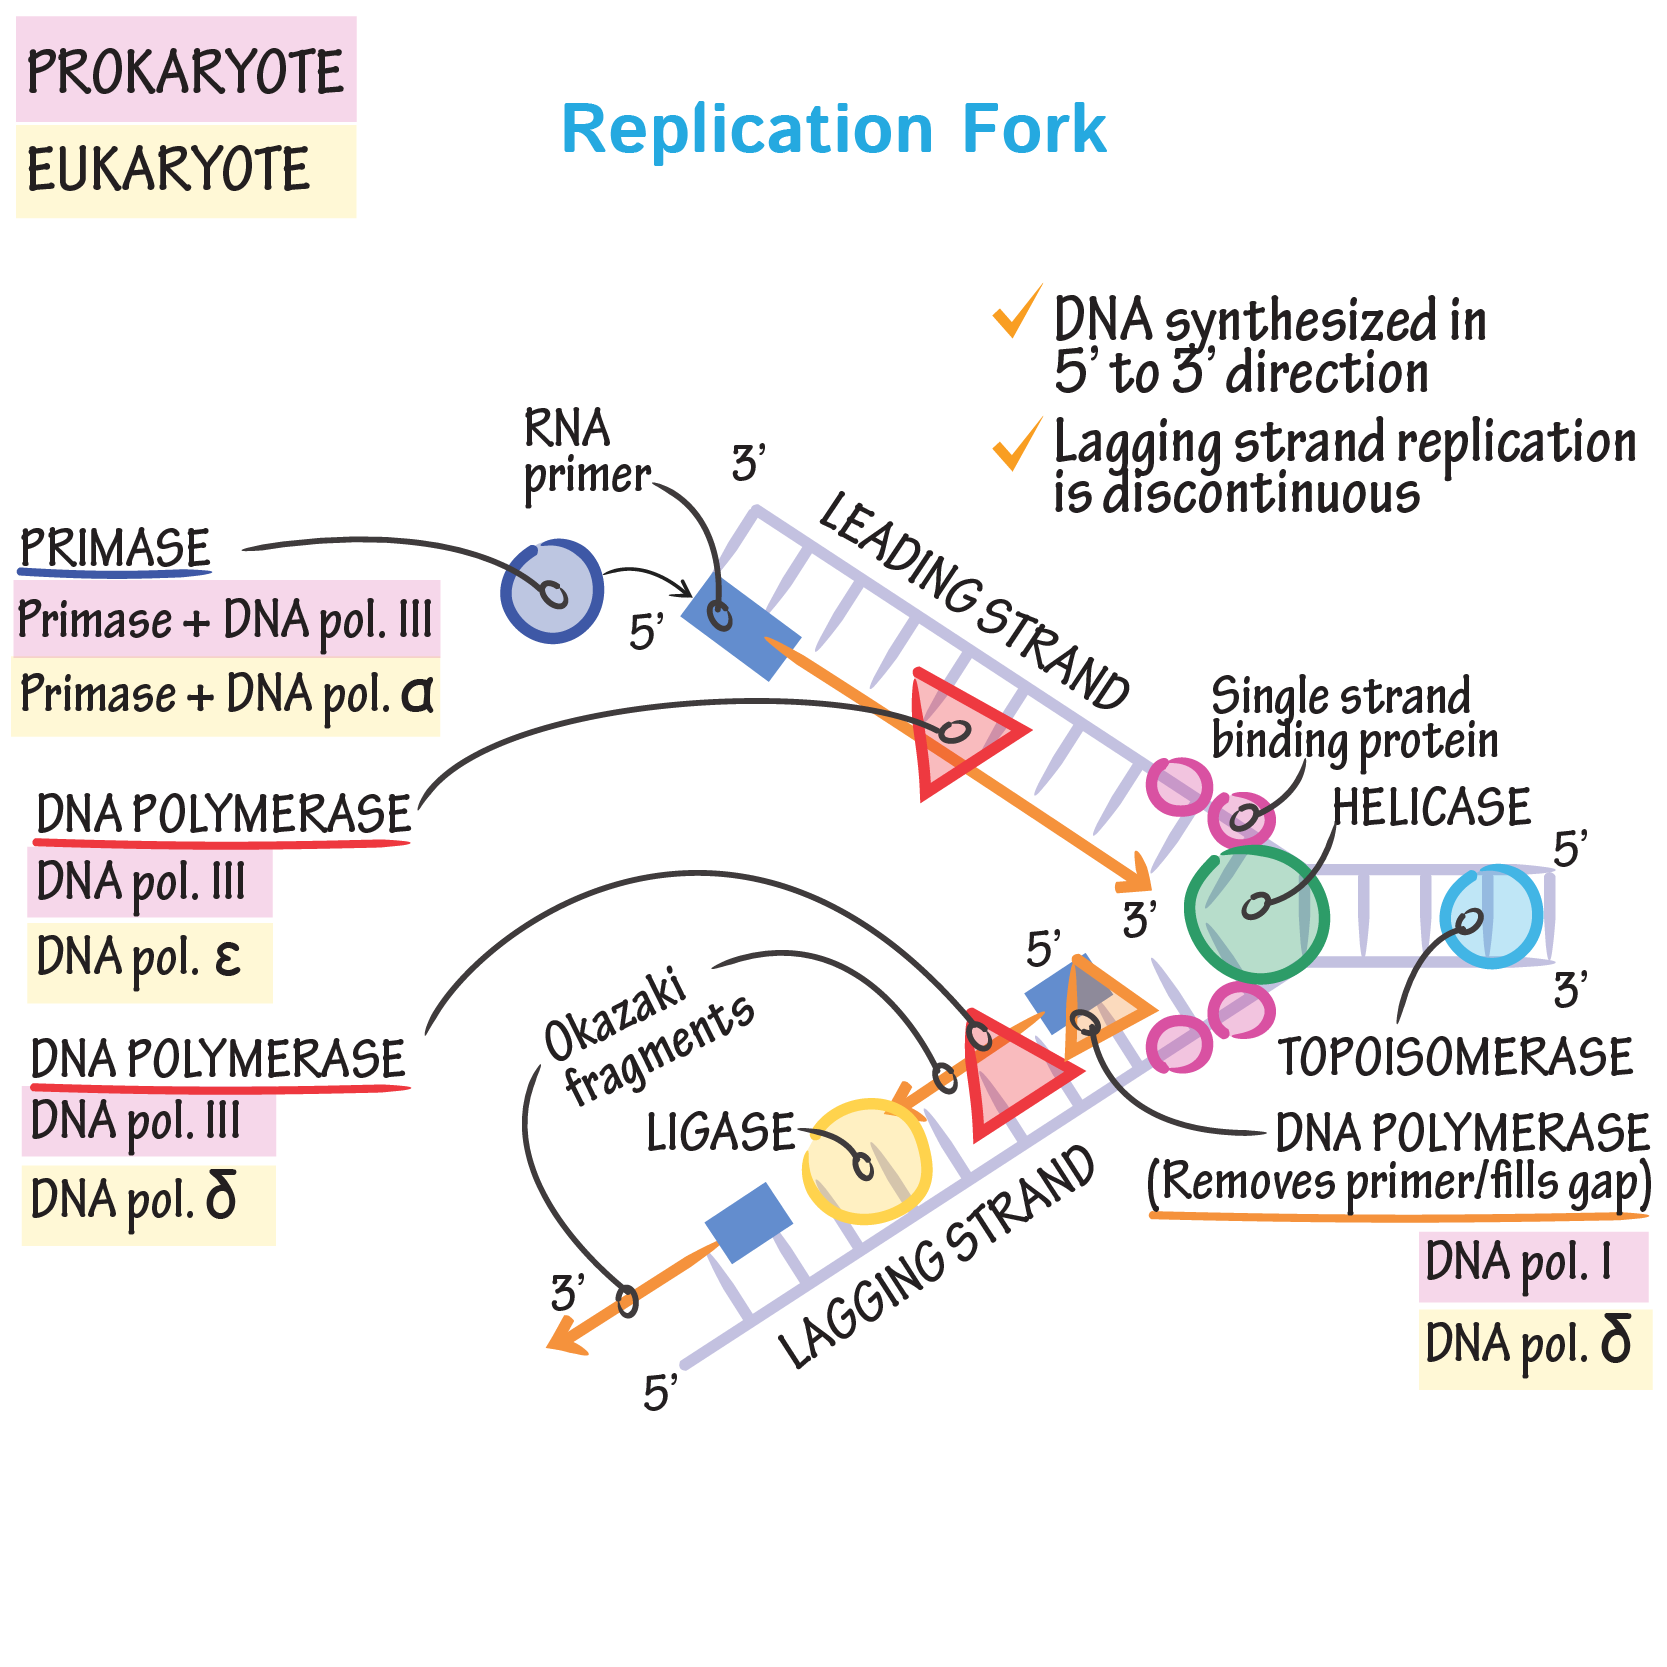 Diagram Dna Replication Fork Labeled